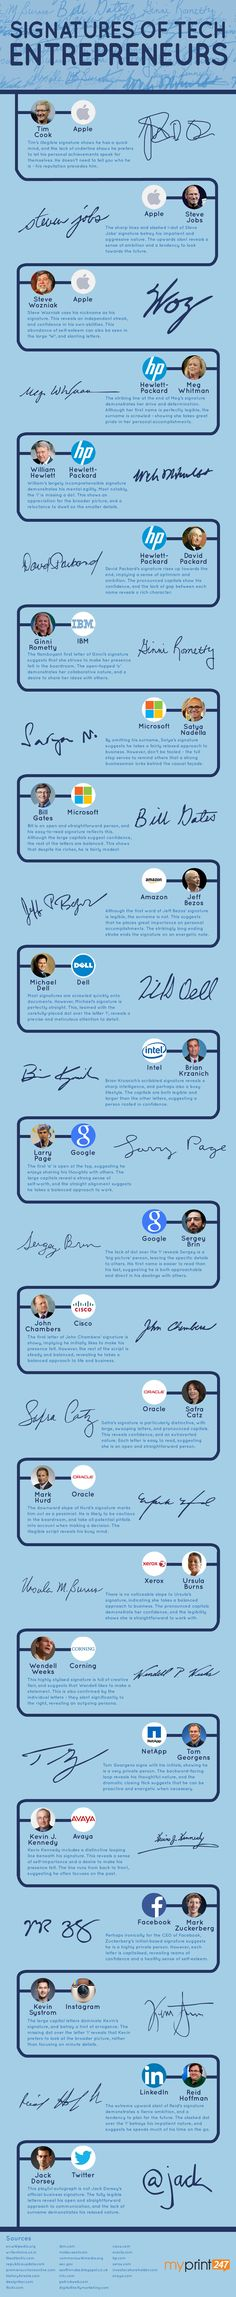 25 Tech Entrepreneurs' Signatures And What They Mean